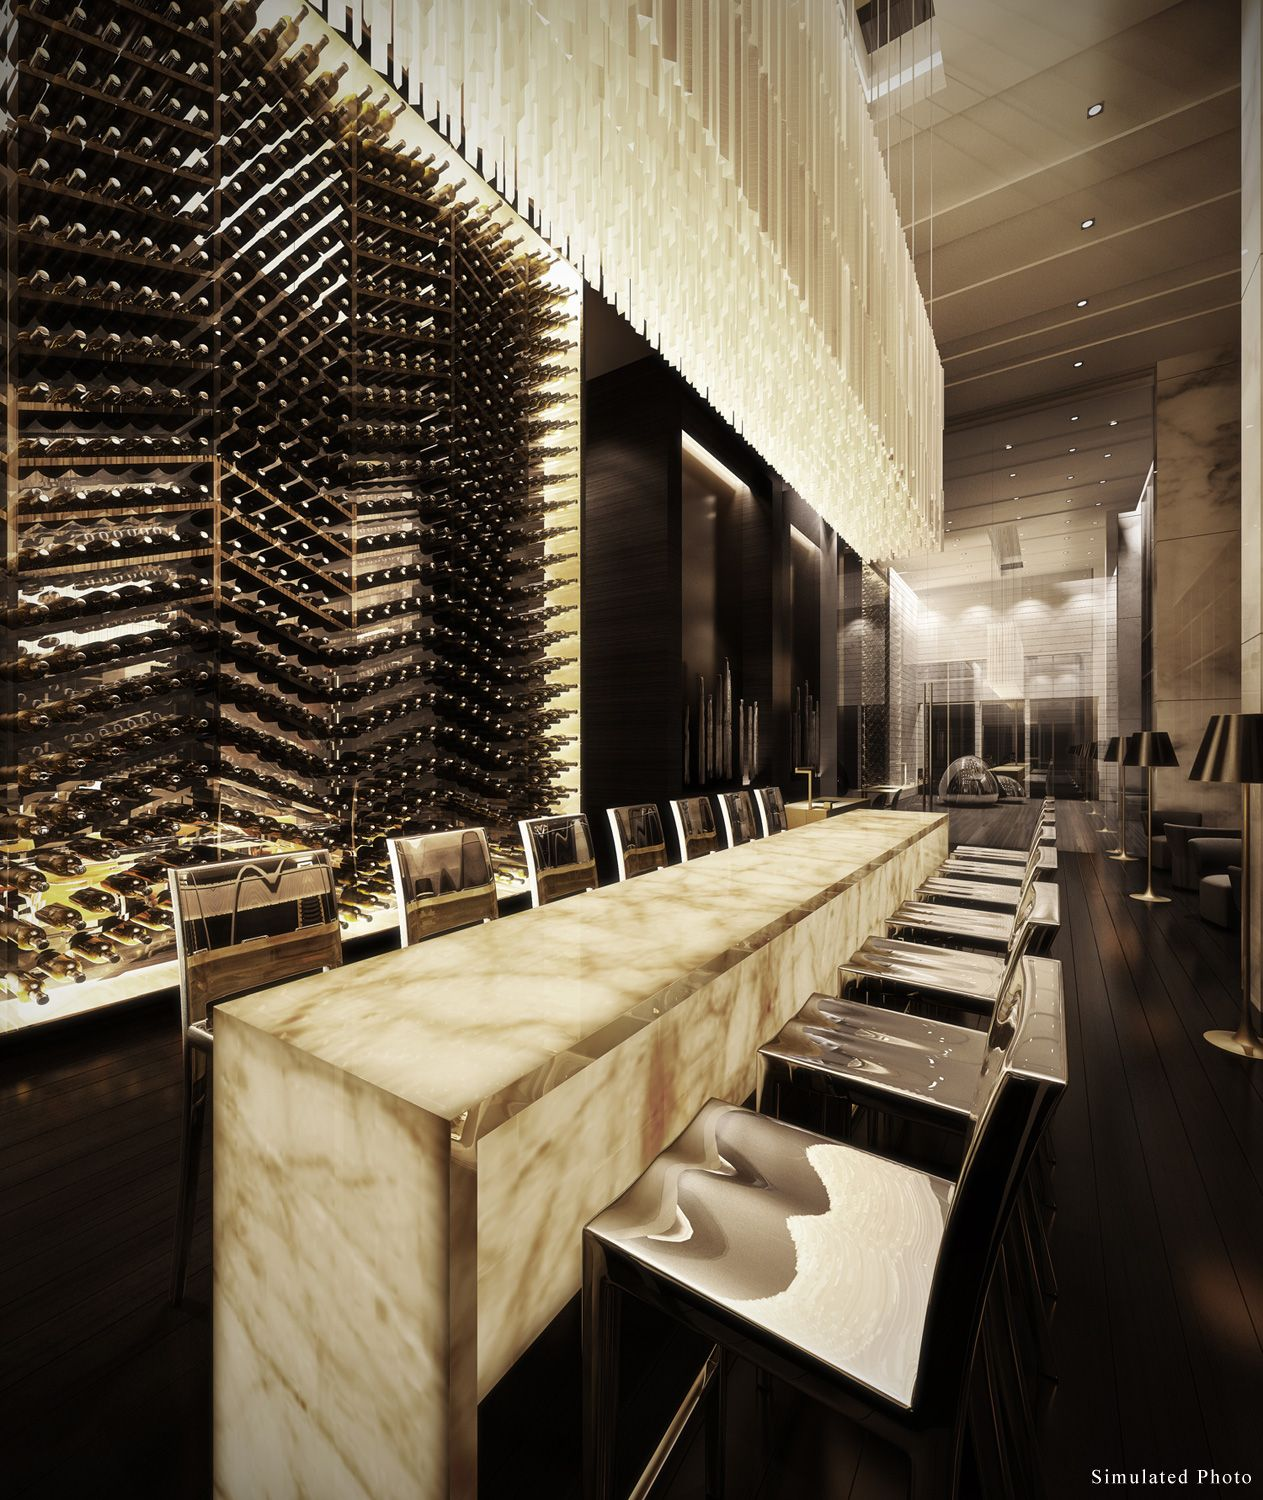 Bar And Lounge Interior Design: Ivy Ampio Restaurant Interior. This Would Be Really Cool